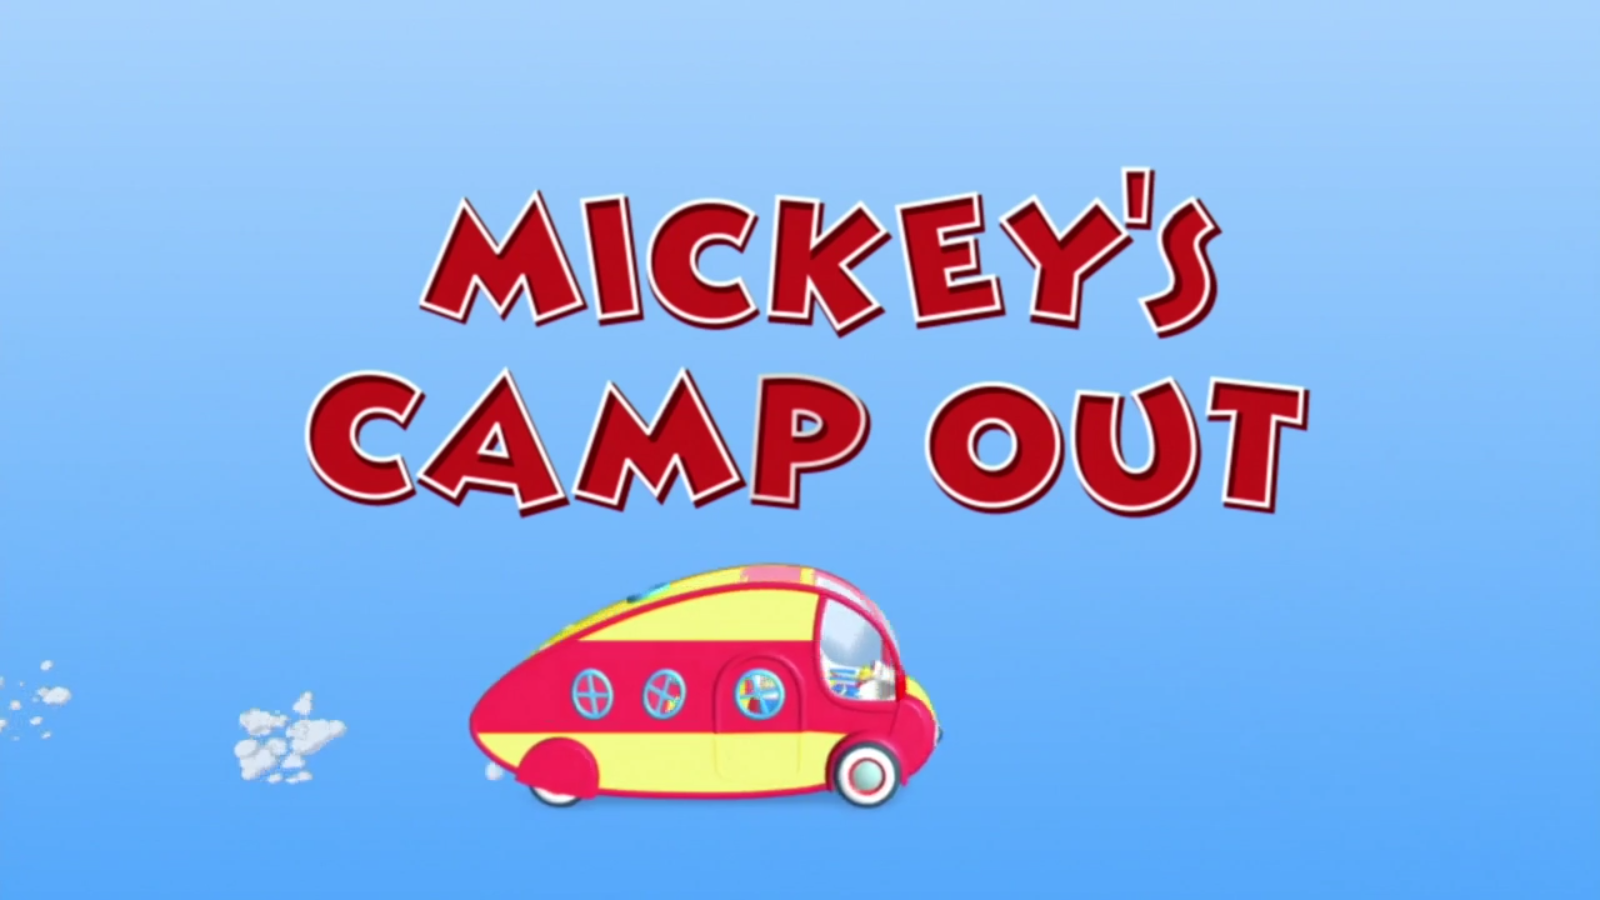 Mickey's Camp Out